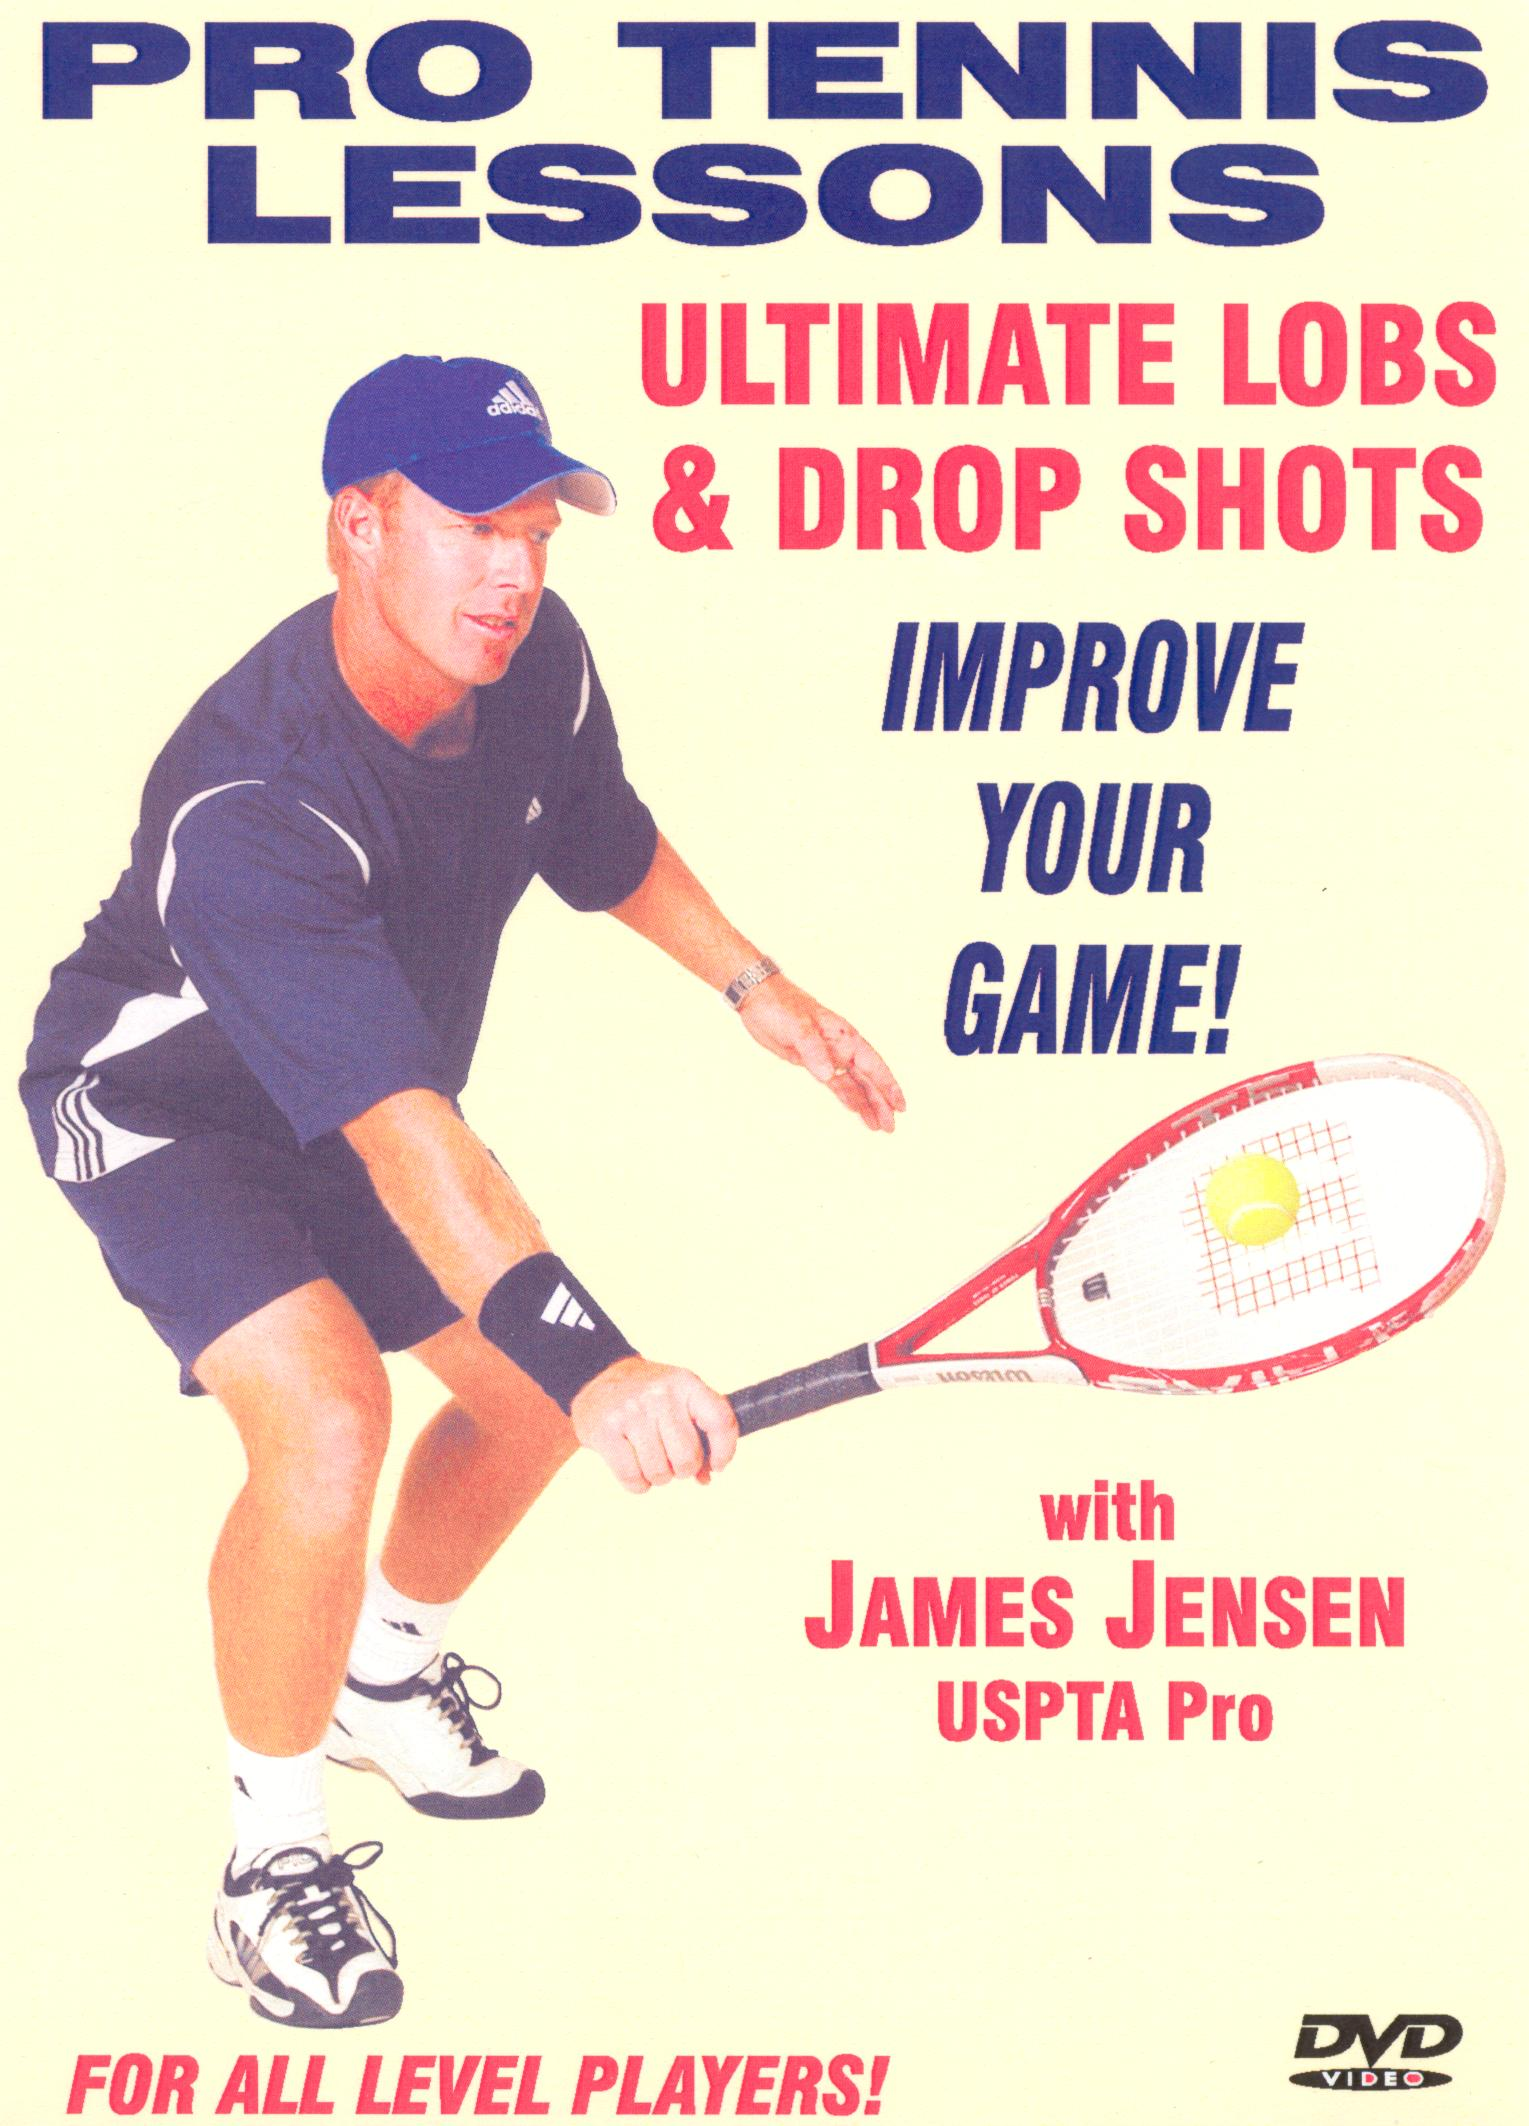 Pro Tennis Lessons: Ultimate Lobs & Drop Shots